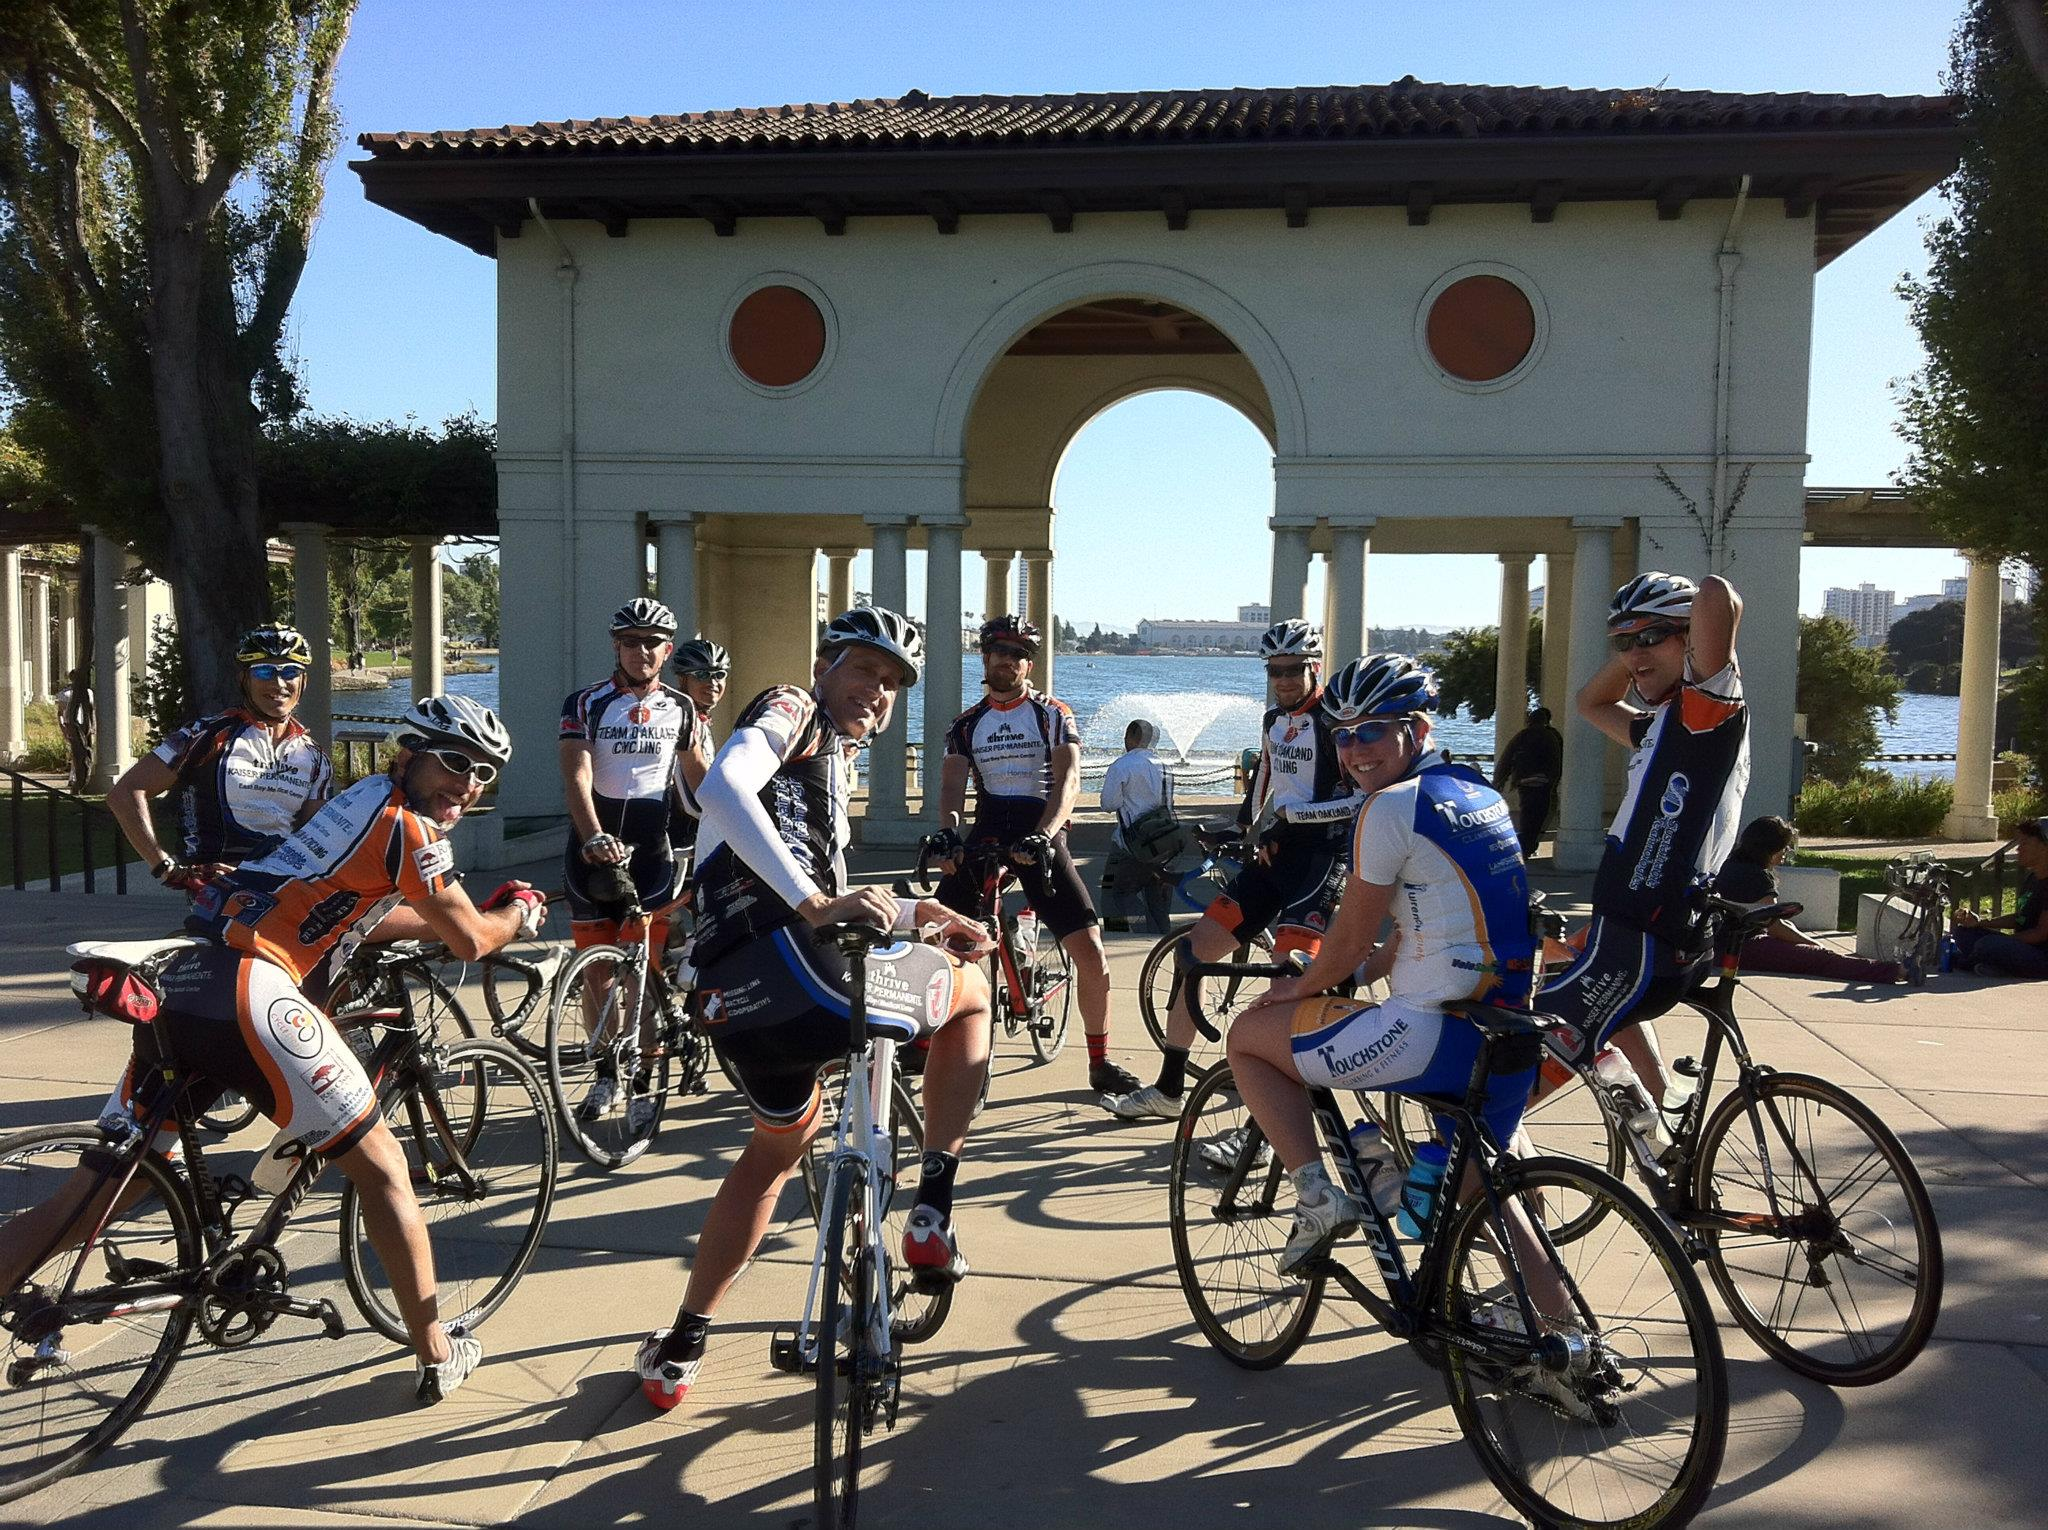 Team oakland cycling feature photo at lake merritt